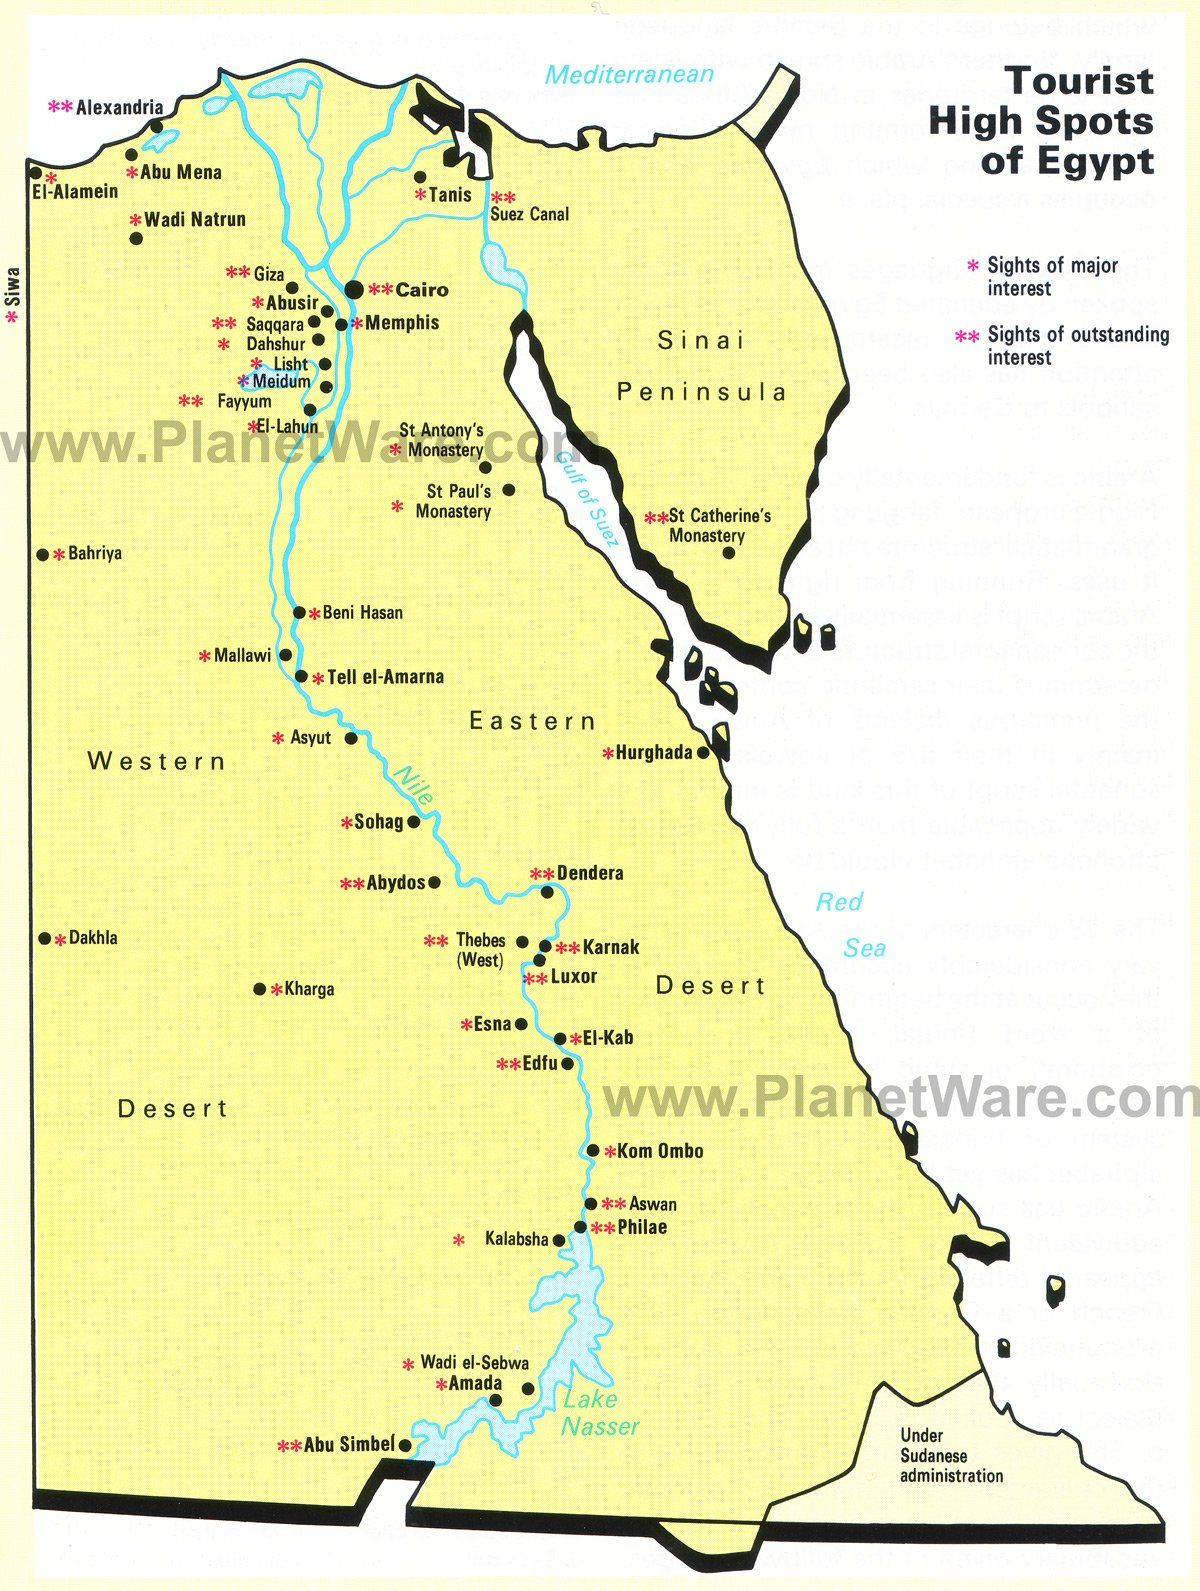 Map Of Populat Tourist Spots In Egypt Planetware Tourist Spots Tourist Egypt